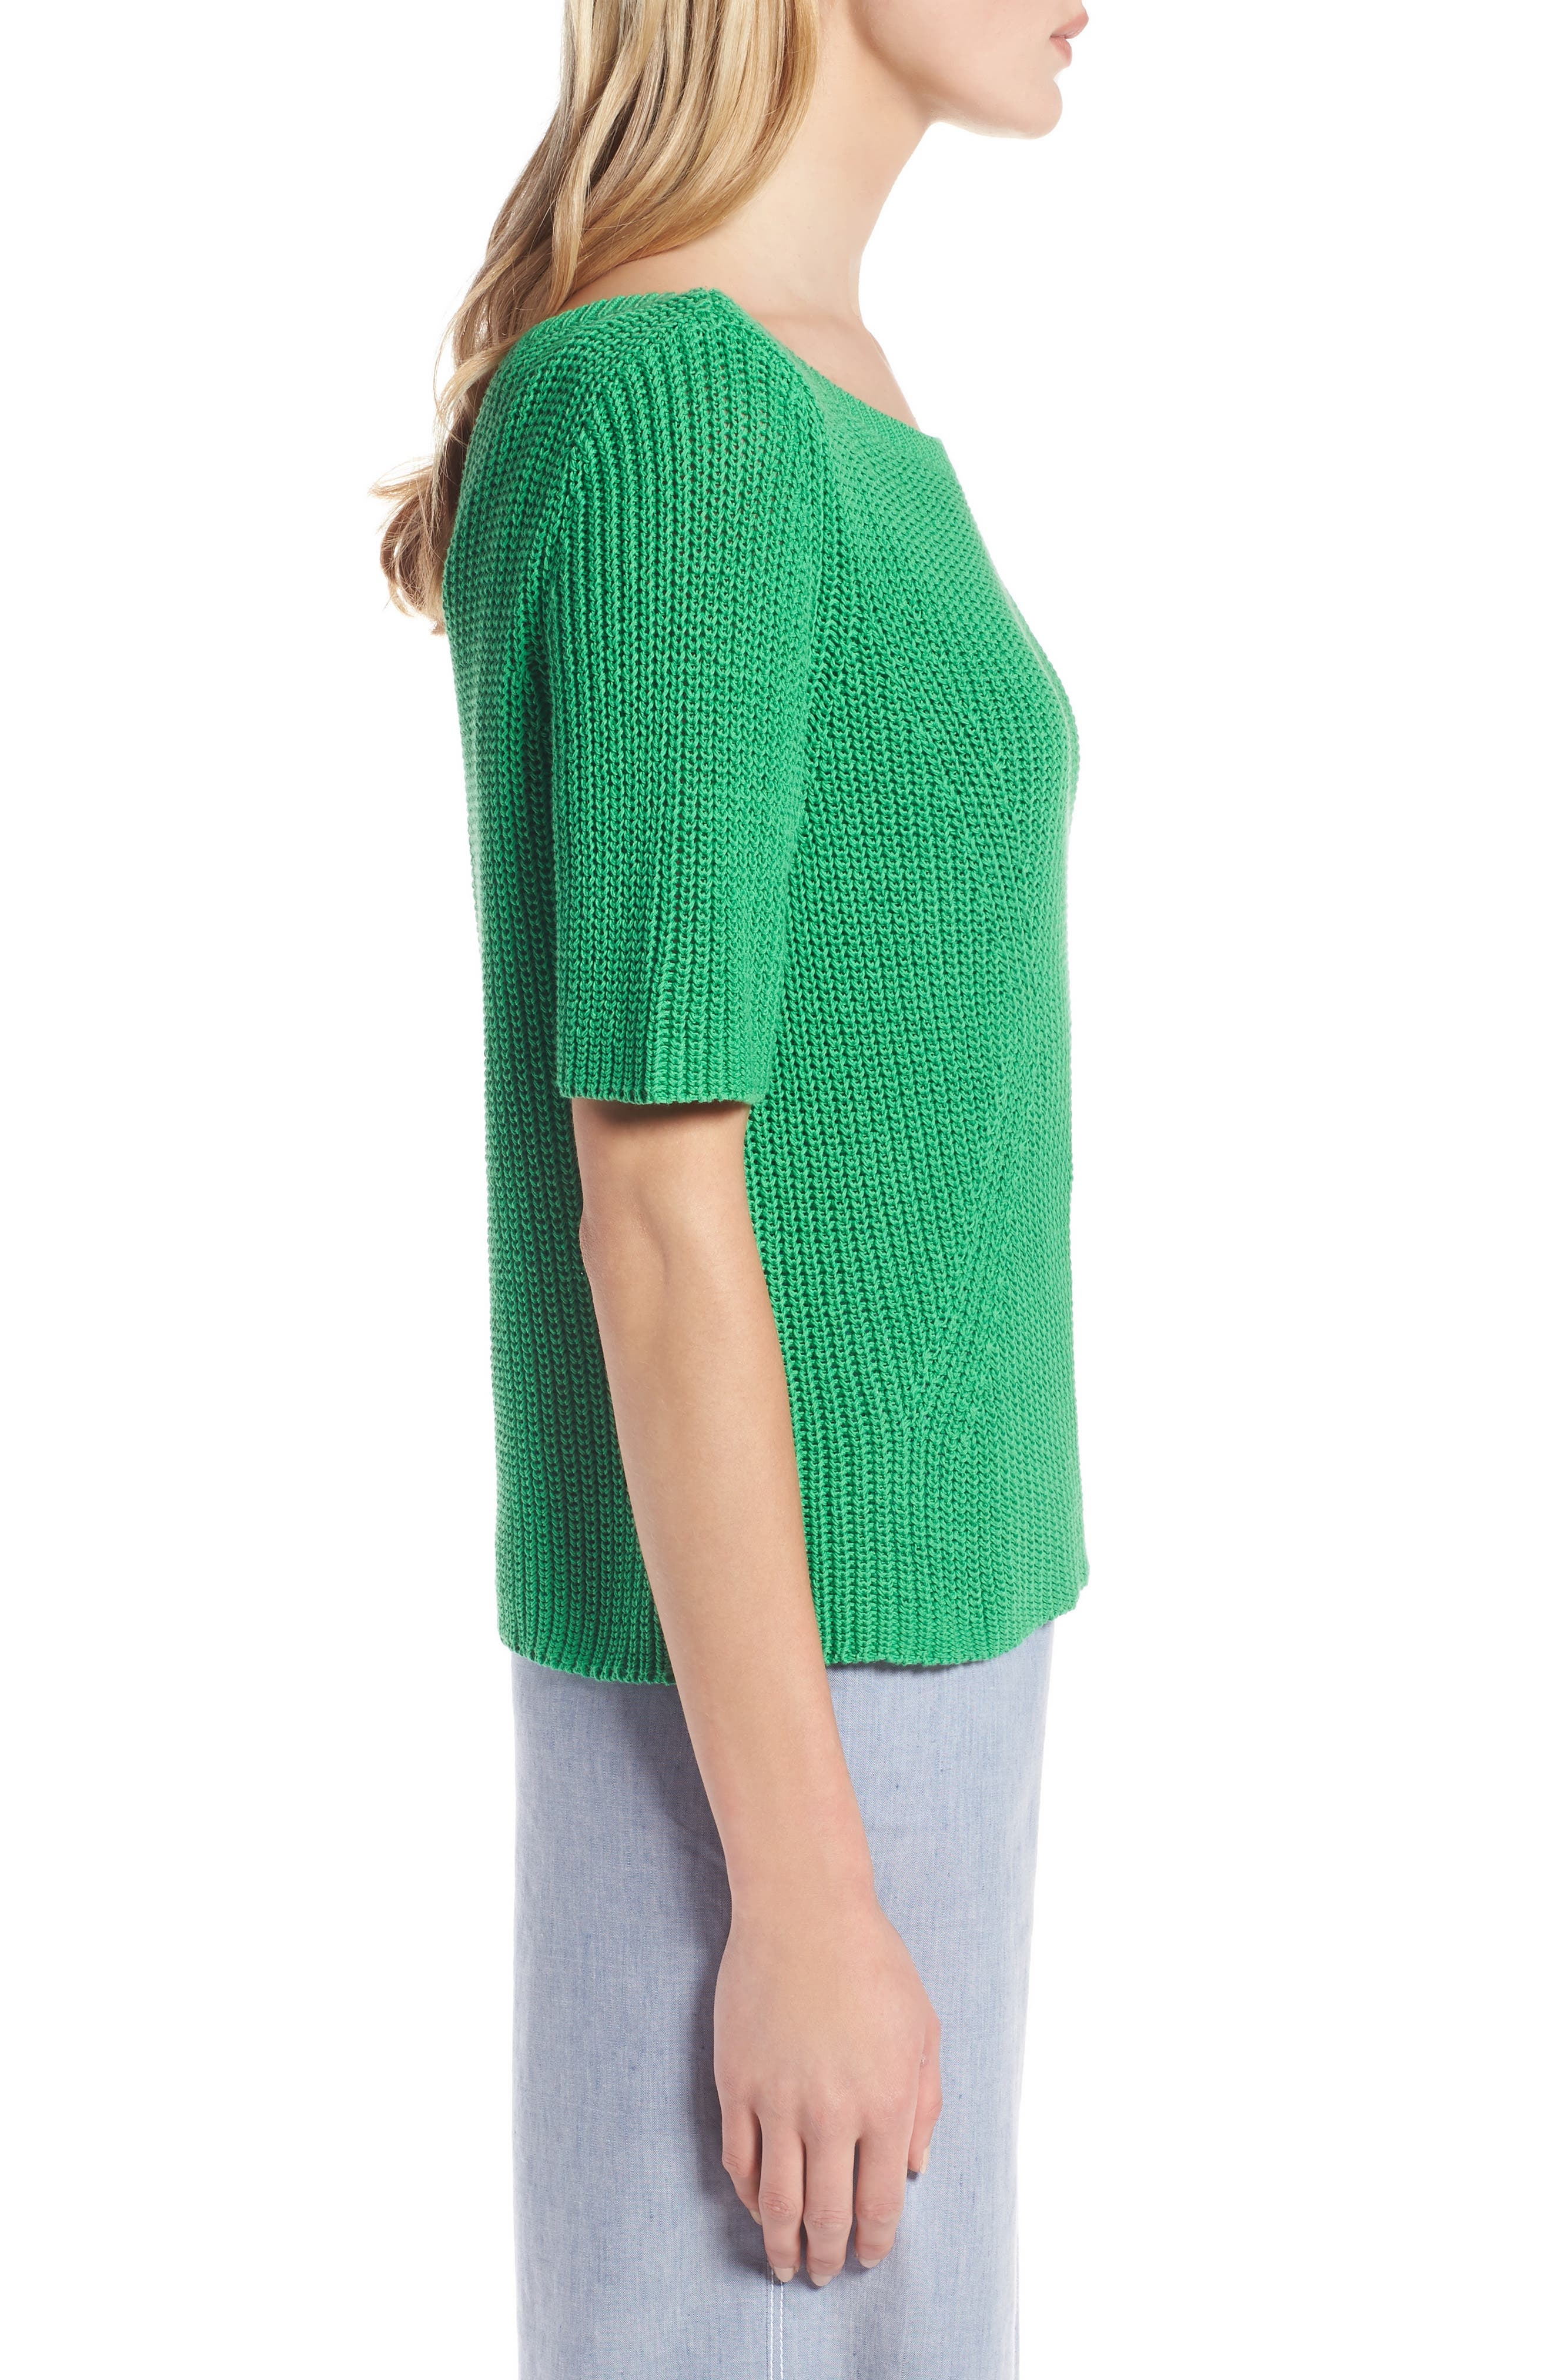 Shaker Stitch Cotton Sweater,                             Alternate thumbnail 3, color,                             Green Kelly